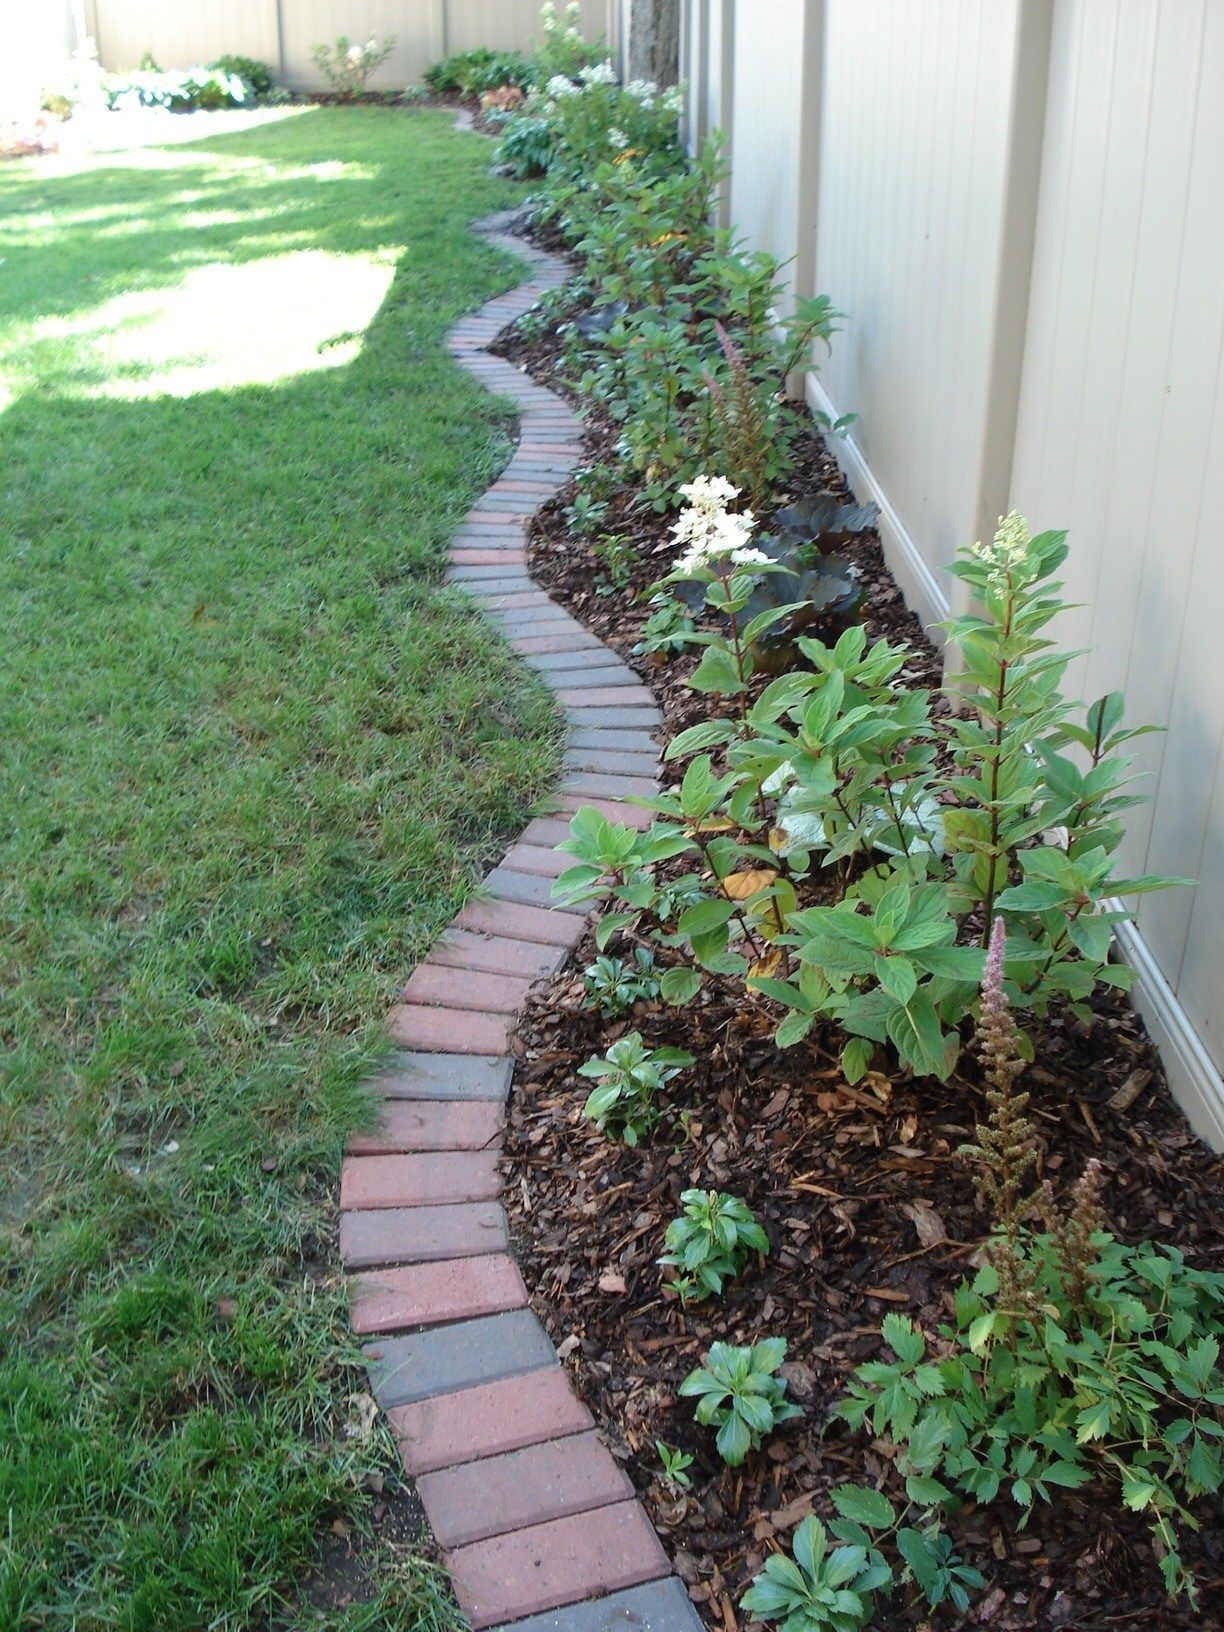 Gentil Brick Edging U2013 Traditional 4u201d X 8u201d Clay Bricks Create An Outstanding Edging.